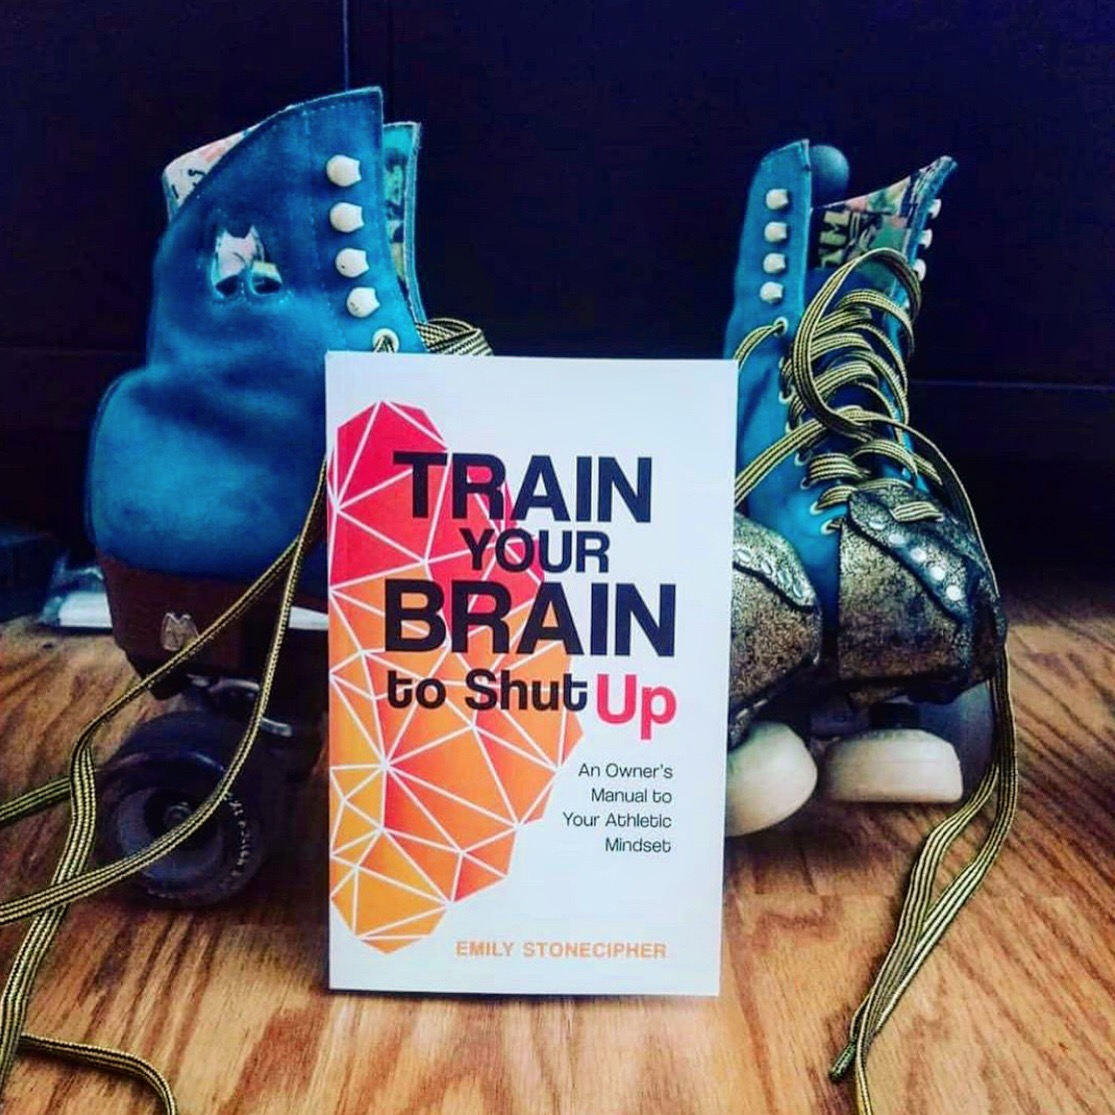 Train your brain to shut up, Book design